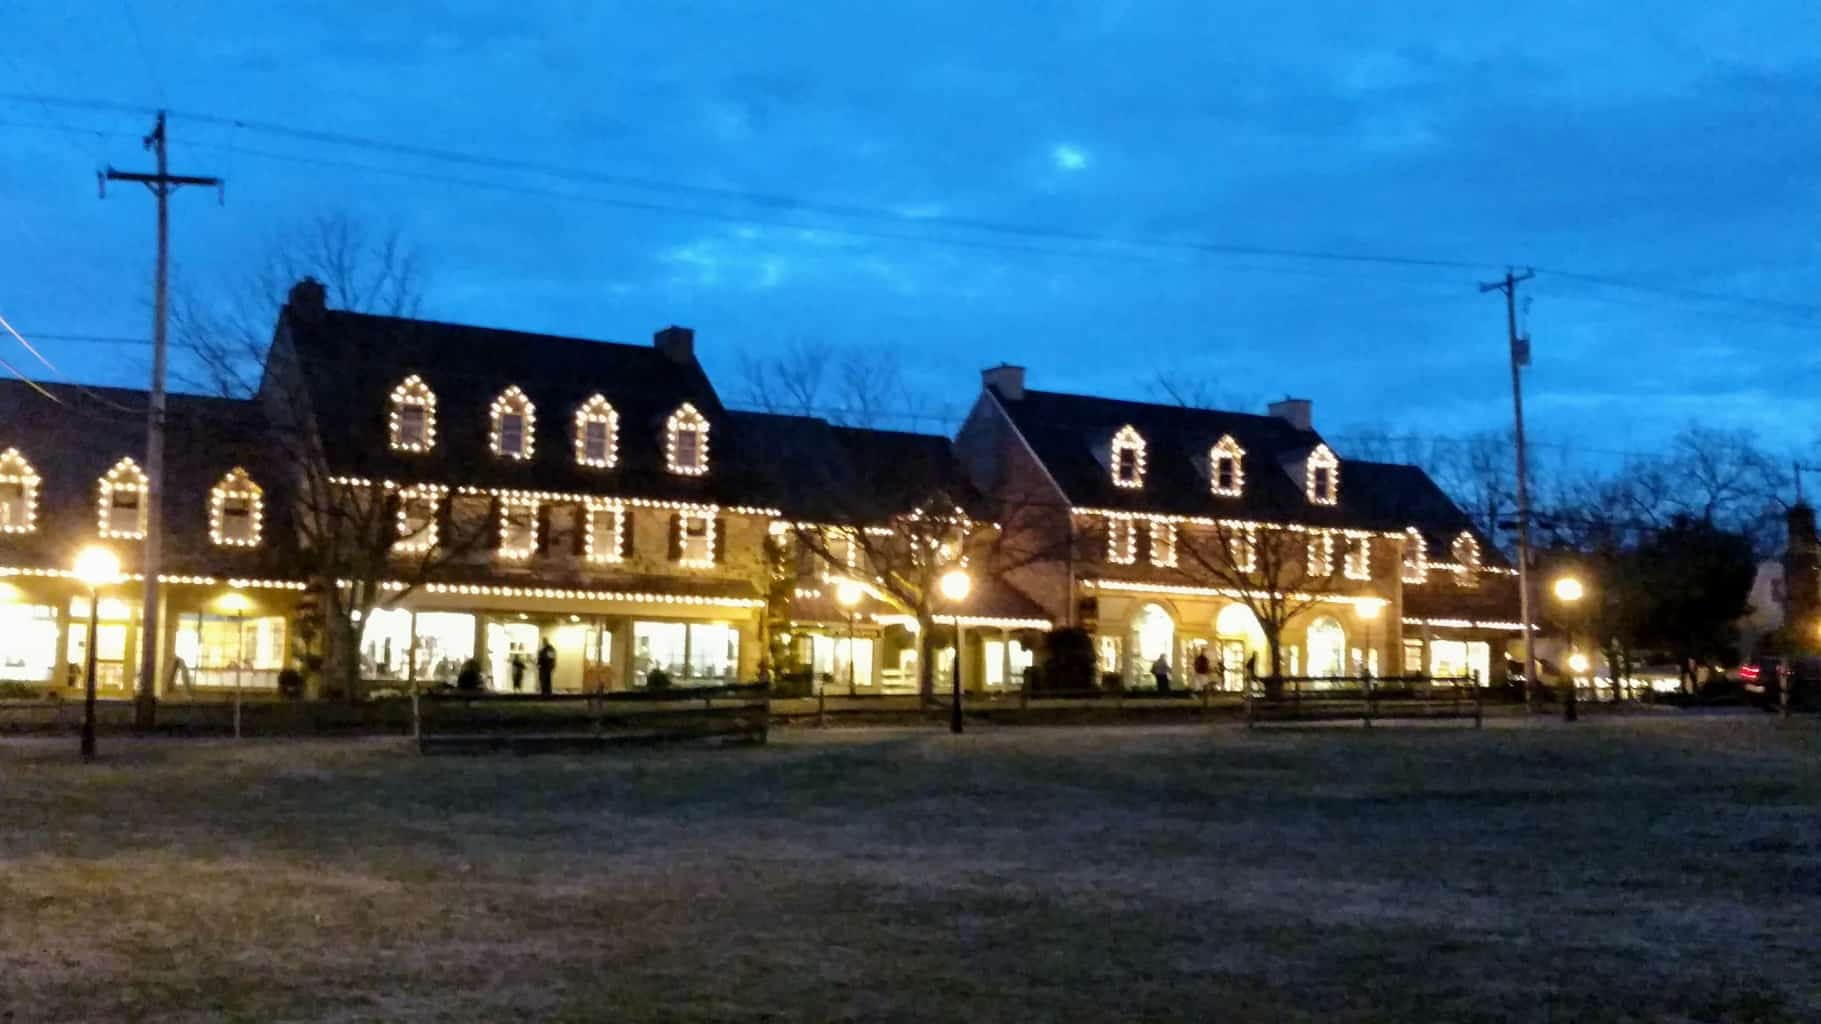 Peddler's Village at night, Lahaska, PA